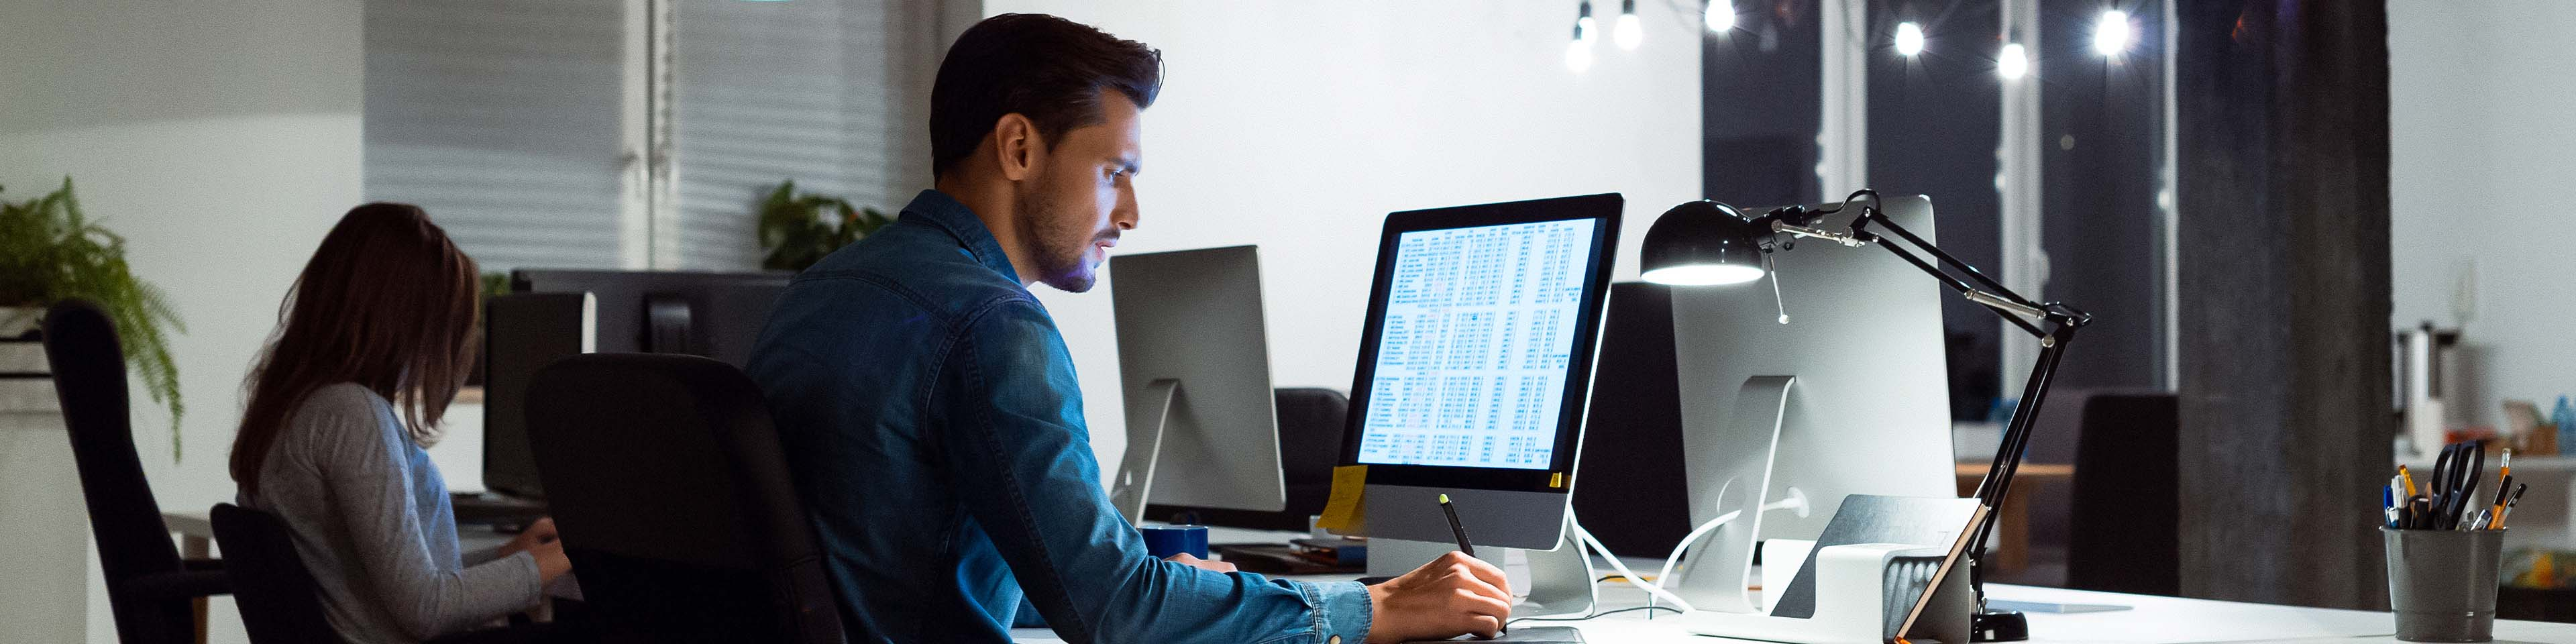 Businessman using computer by female colleague